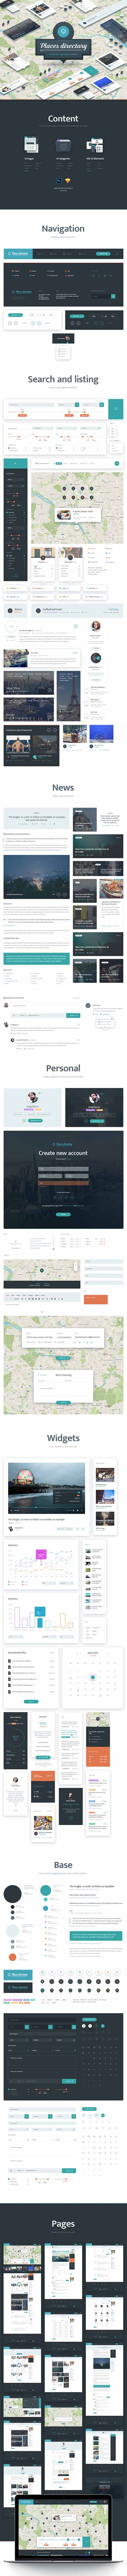 Places Directory - UI tool kit for managing advertisements via map function